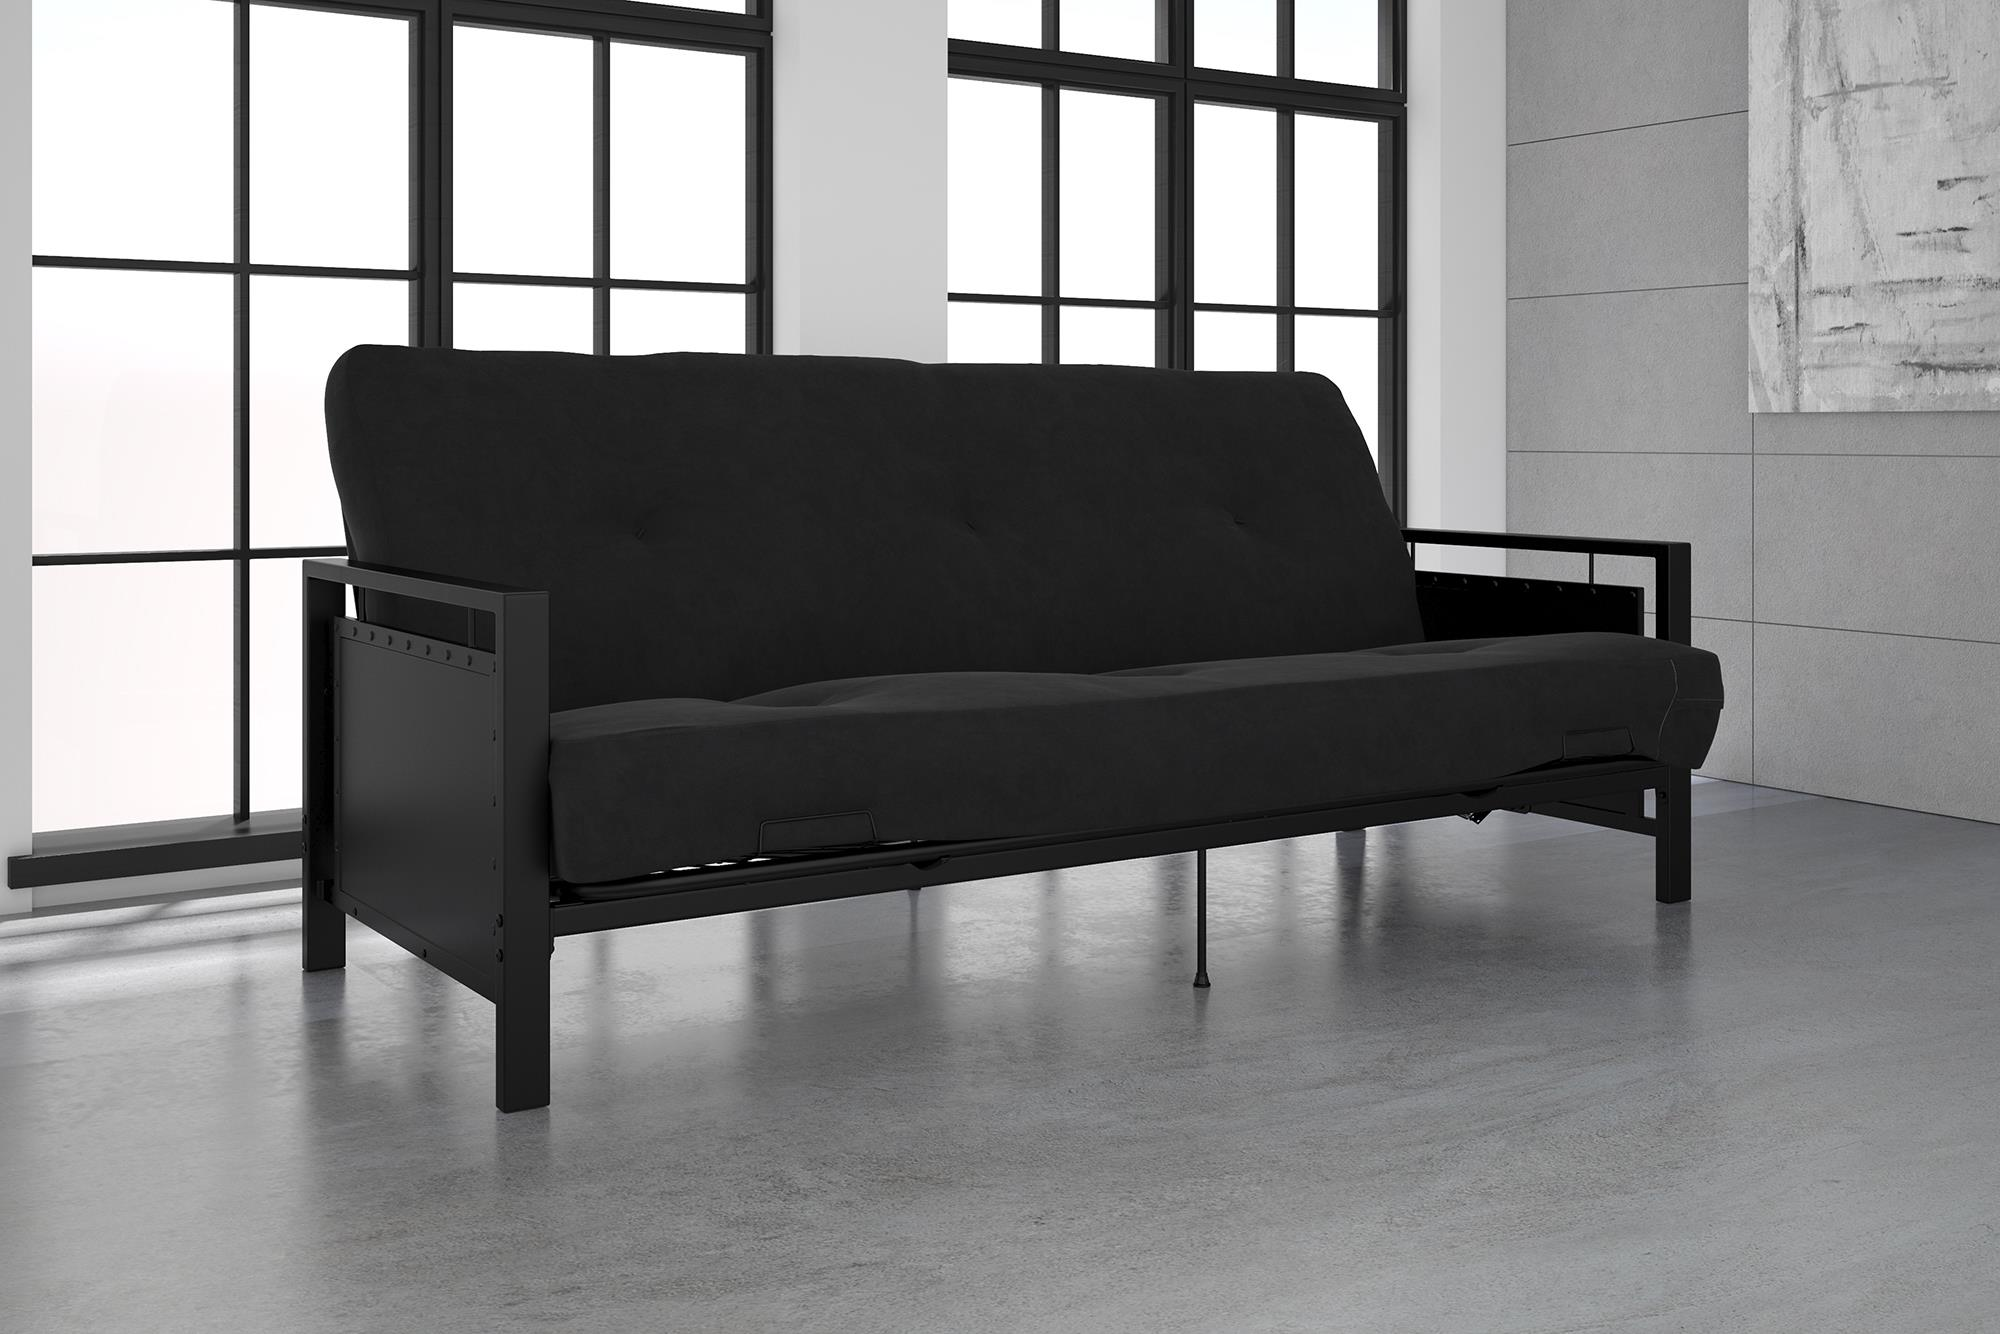 DHP Henley Black Metal Arm Futon Frame with Coil Full Futon Mattress, Multiple Colors and Sizes by Dorel Home Products